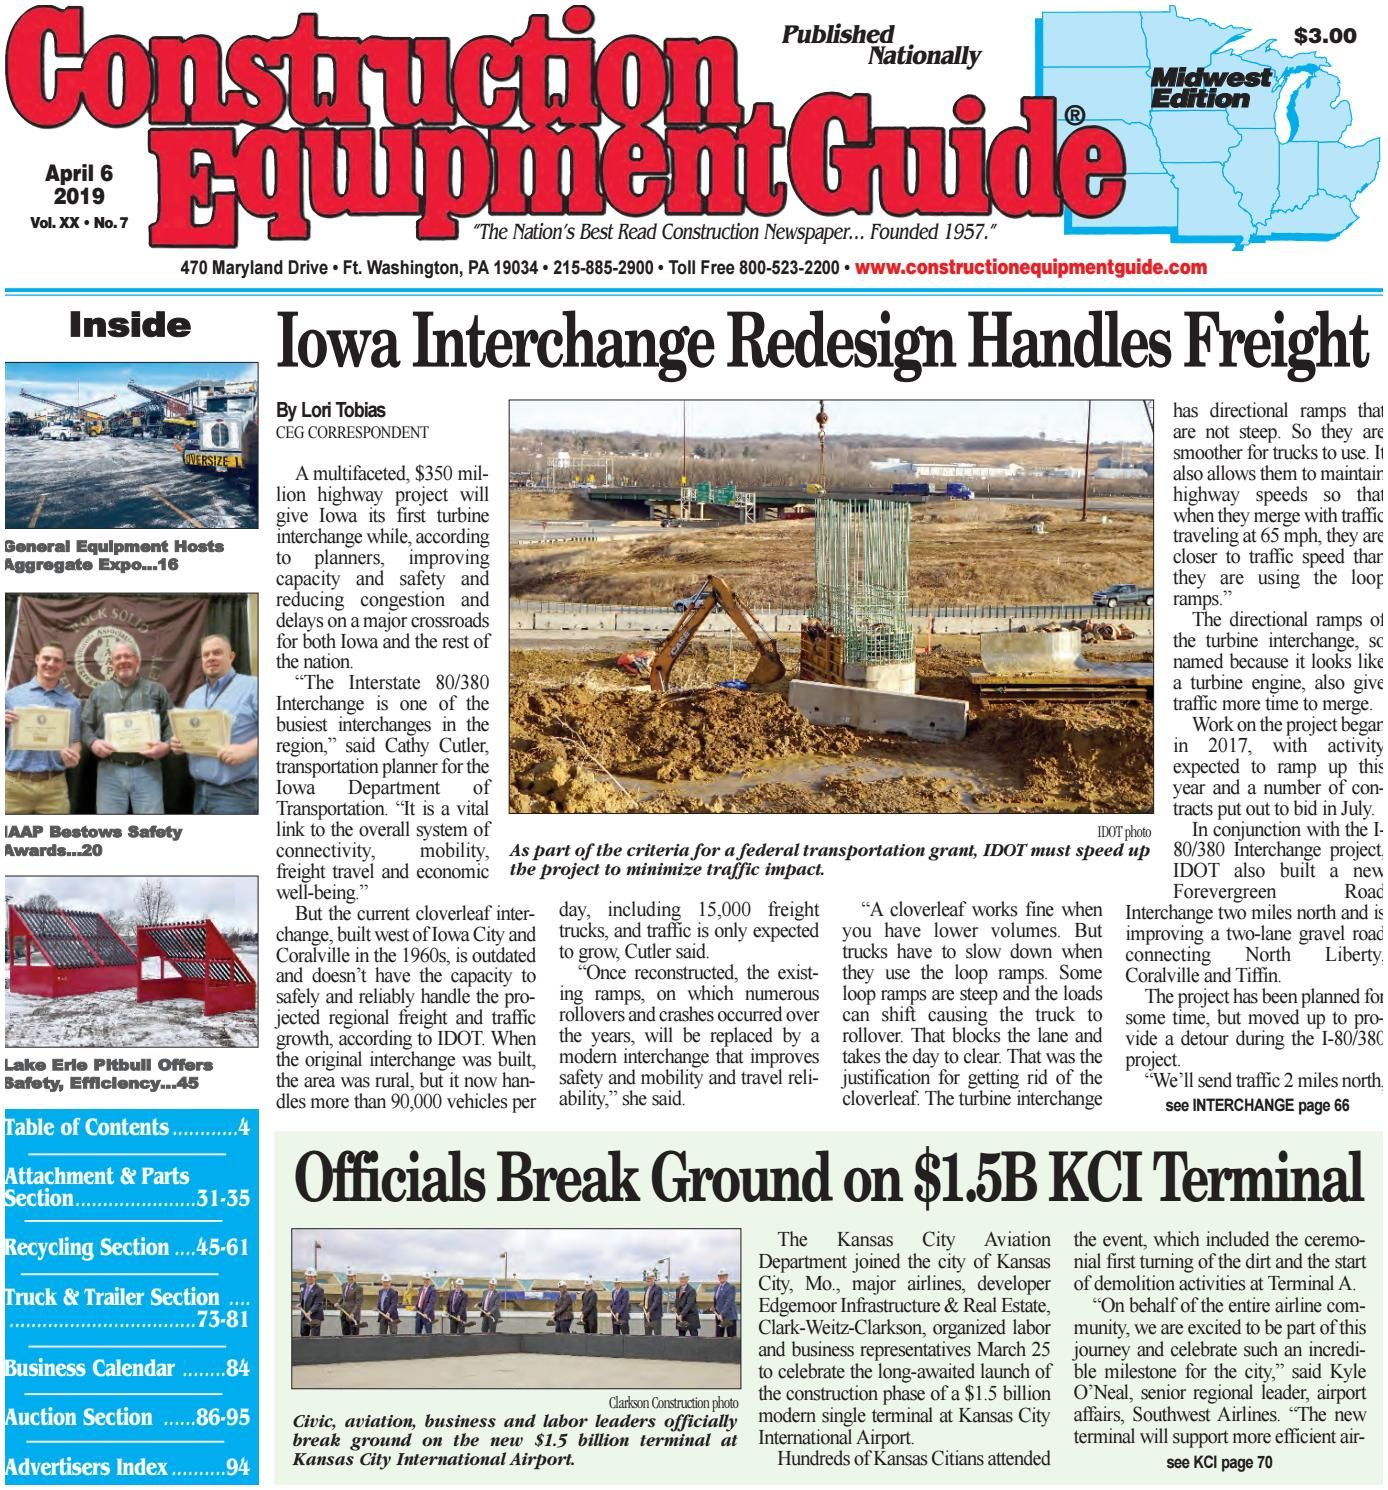 Kansas City Business Magazine Midwest 7 April 6 2019 by Construction Equipment Guide issuu